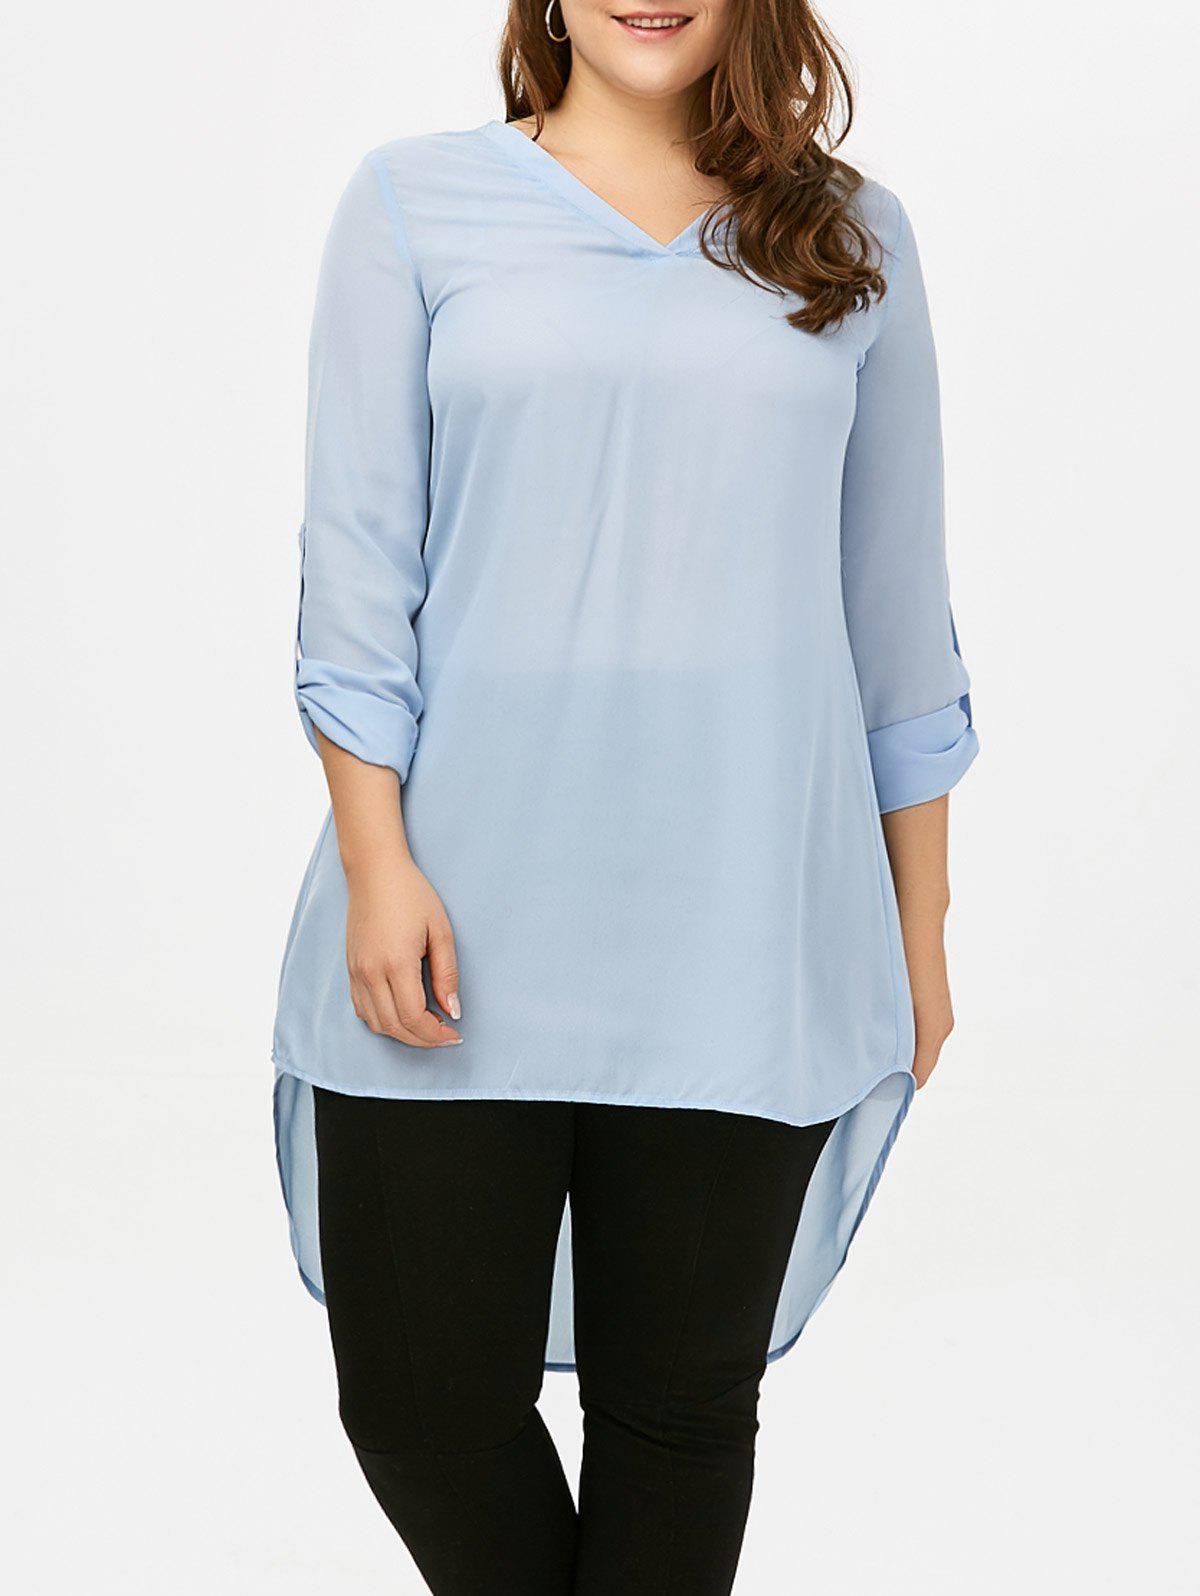 7c24d4f78aed29 Affordable V Neck High Low Plus Size Top